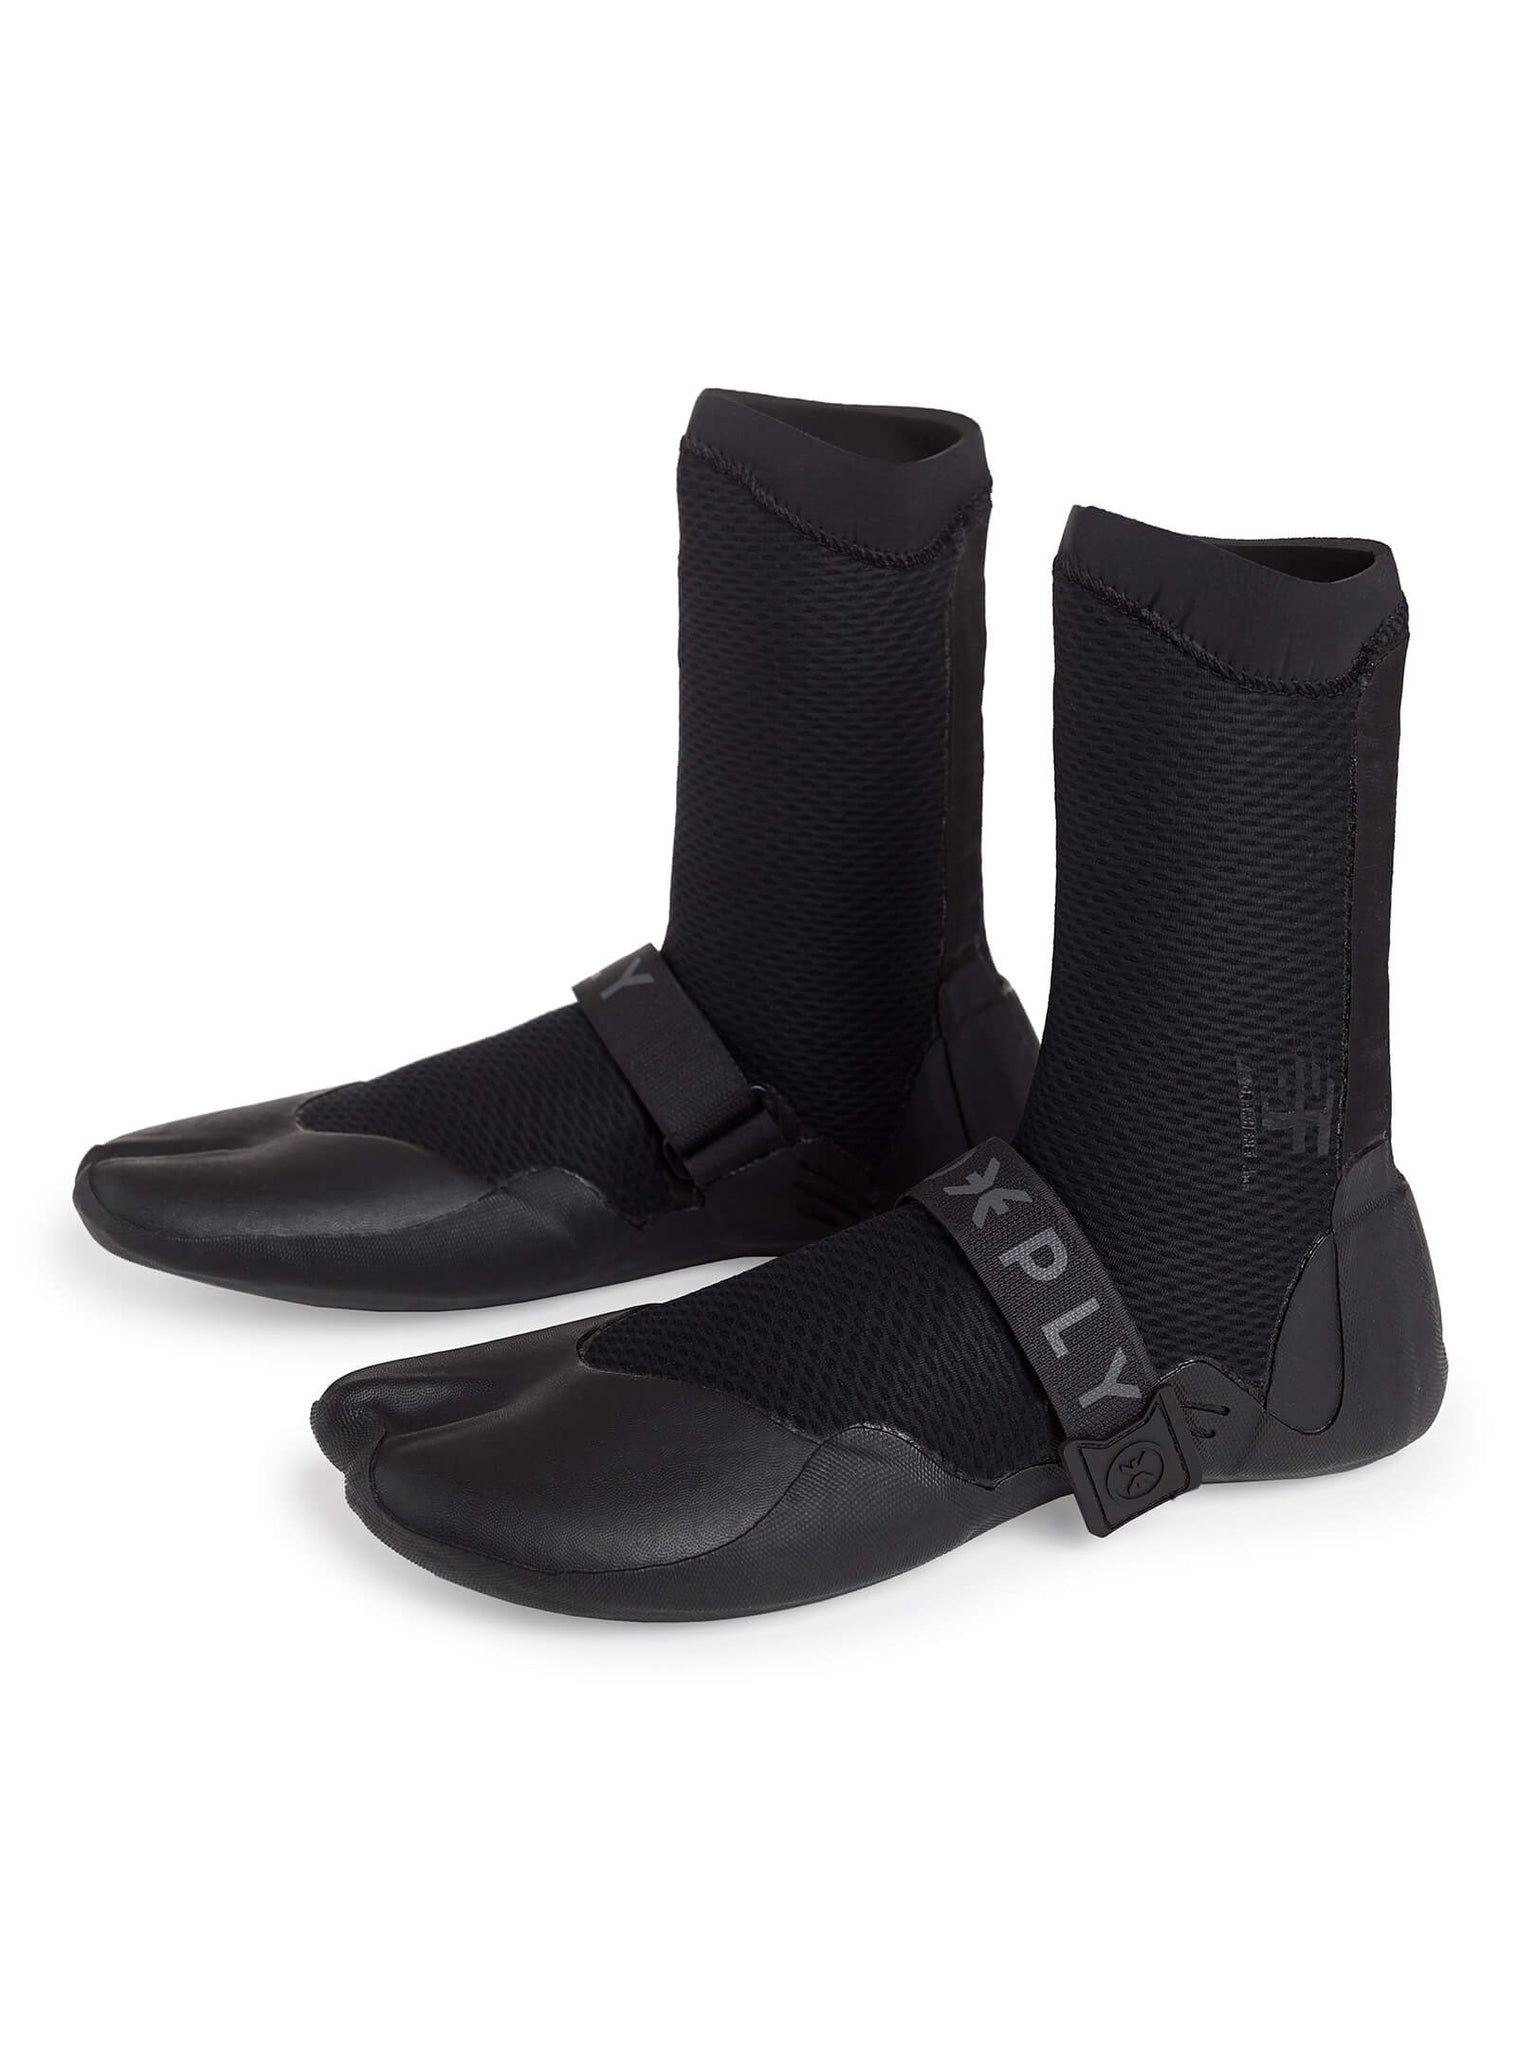 Surf Boots 3mm Graphene Botins De Surf Preto